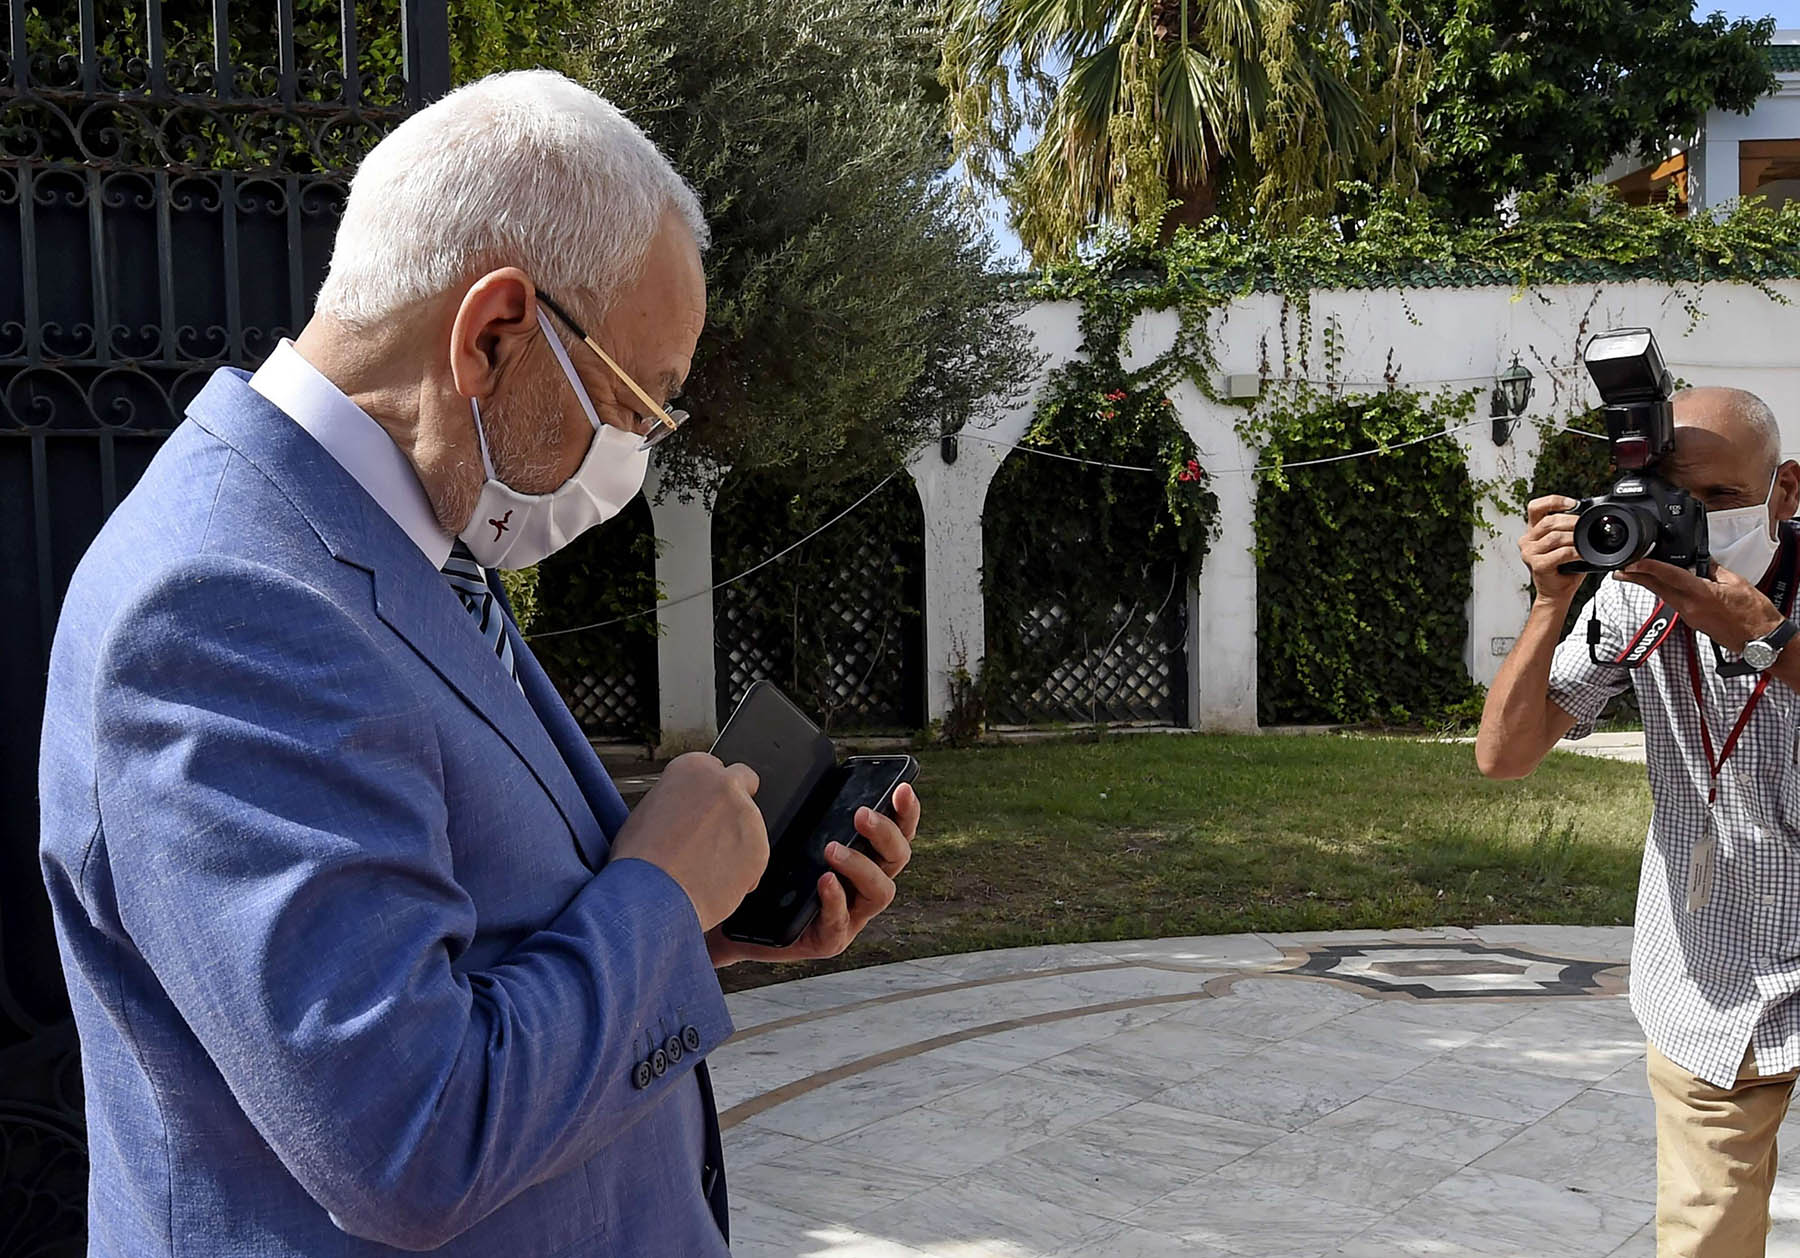 Tunisian Islamist party leader Rached Ghannouchi arrives at a government ceremony in Carthage on the eastern outskirts of the capital Tunis on September 3. (AFP)